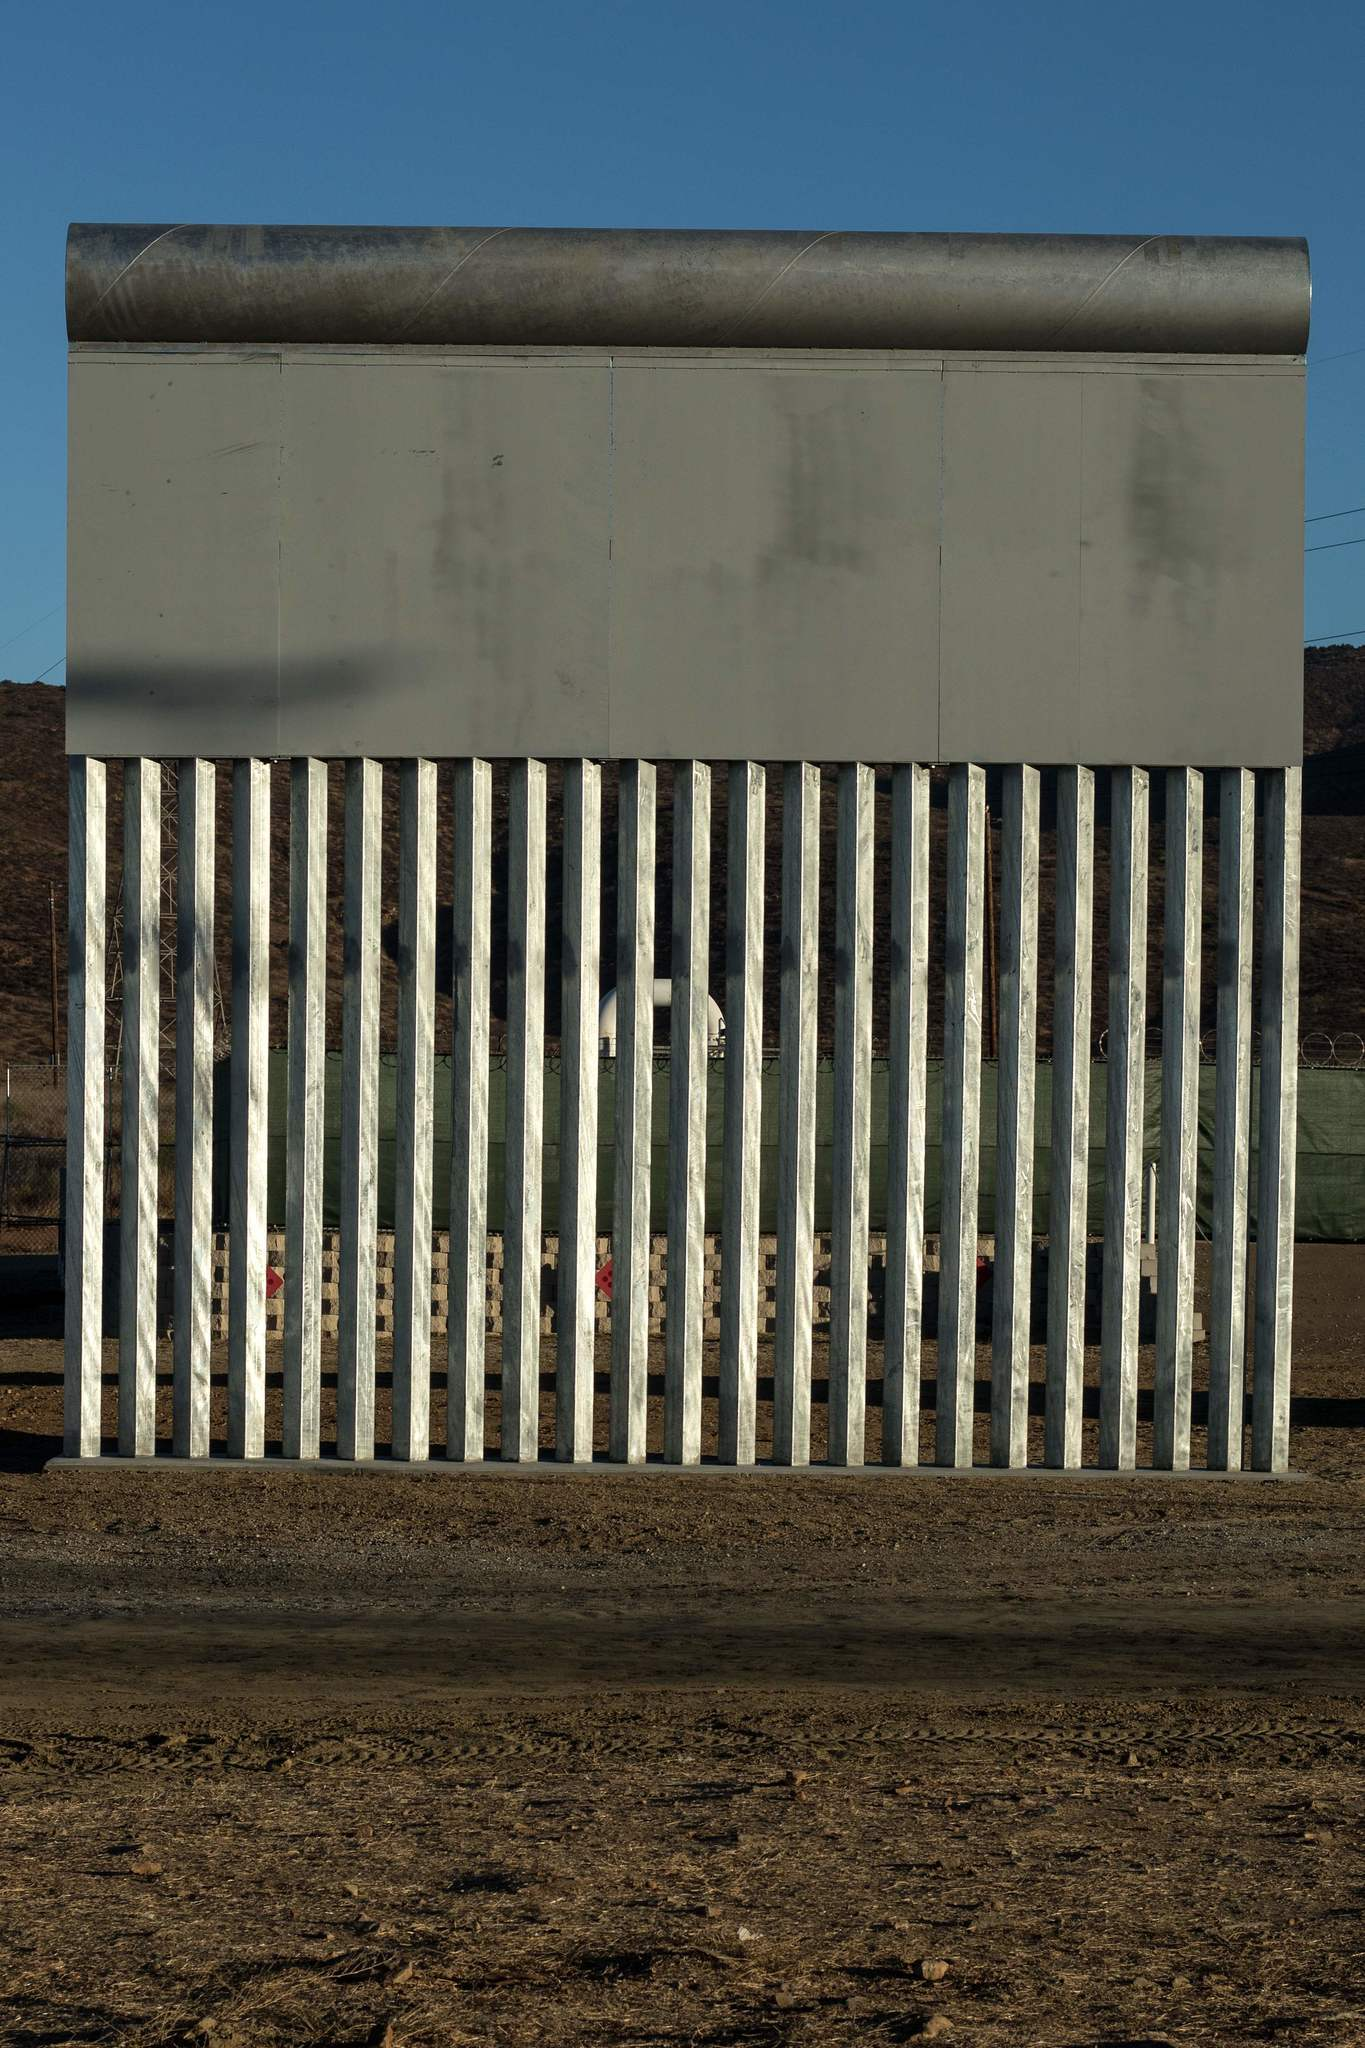 Trump S Border Wall Through The Eyes Of An Architecture